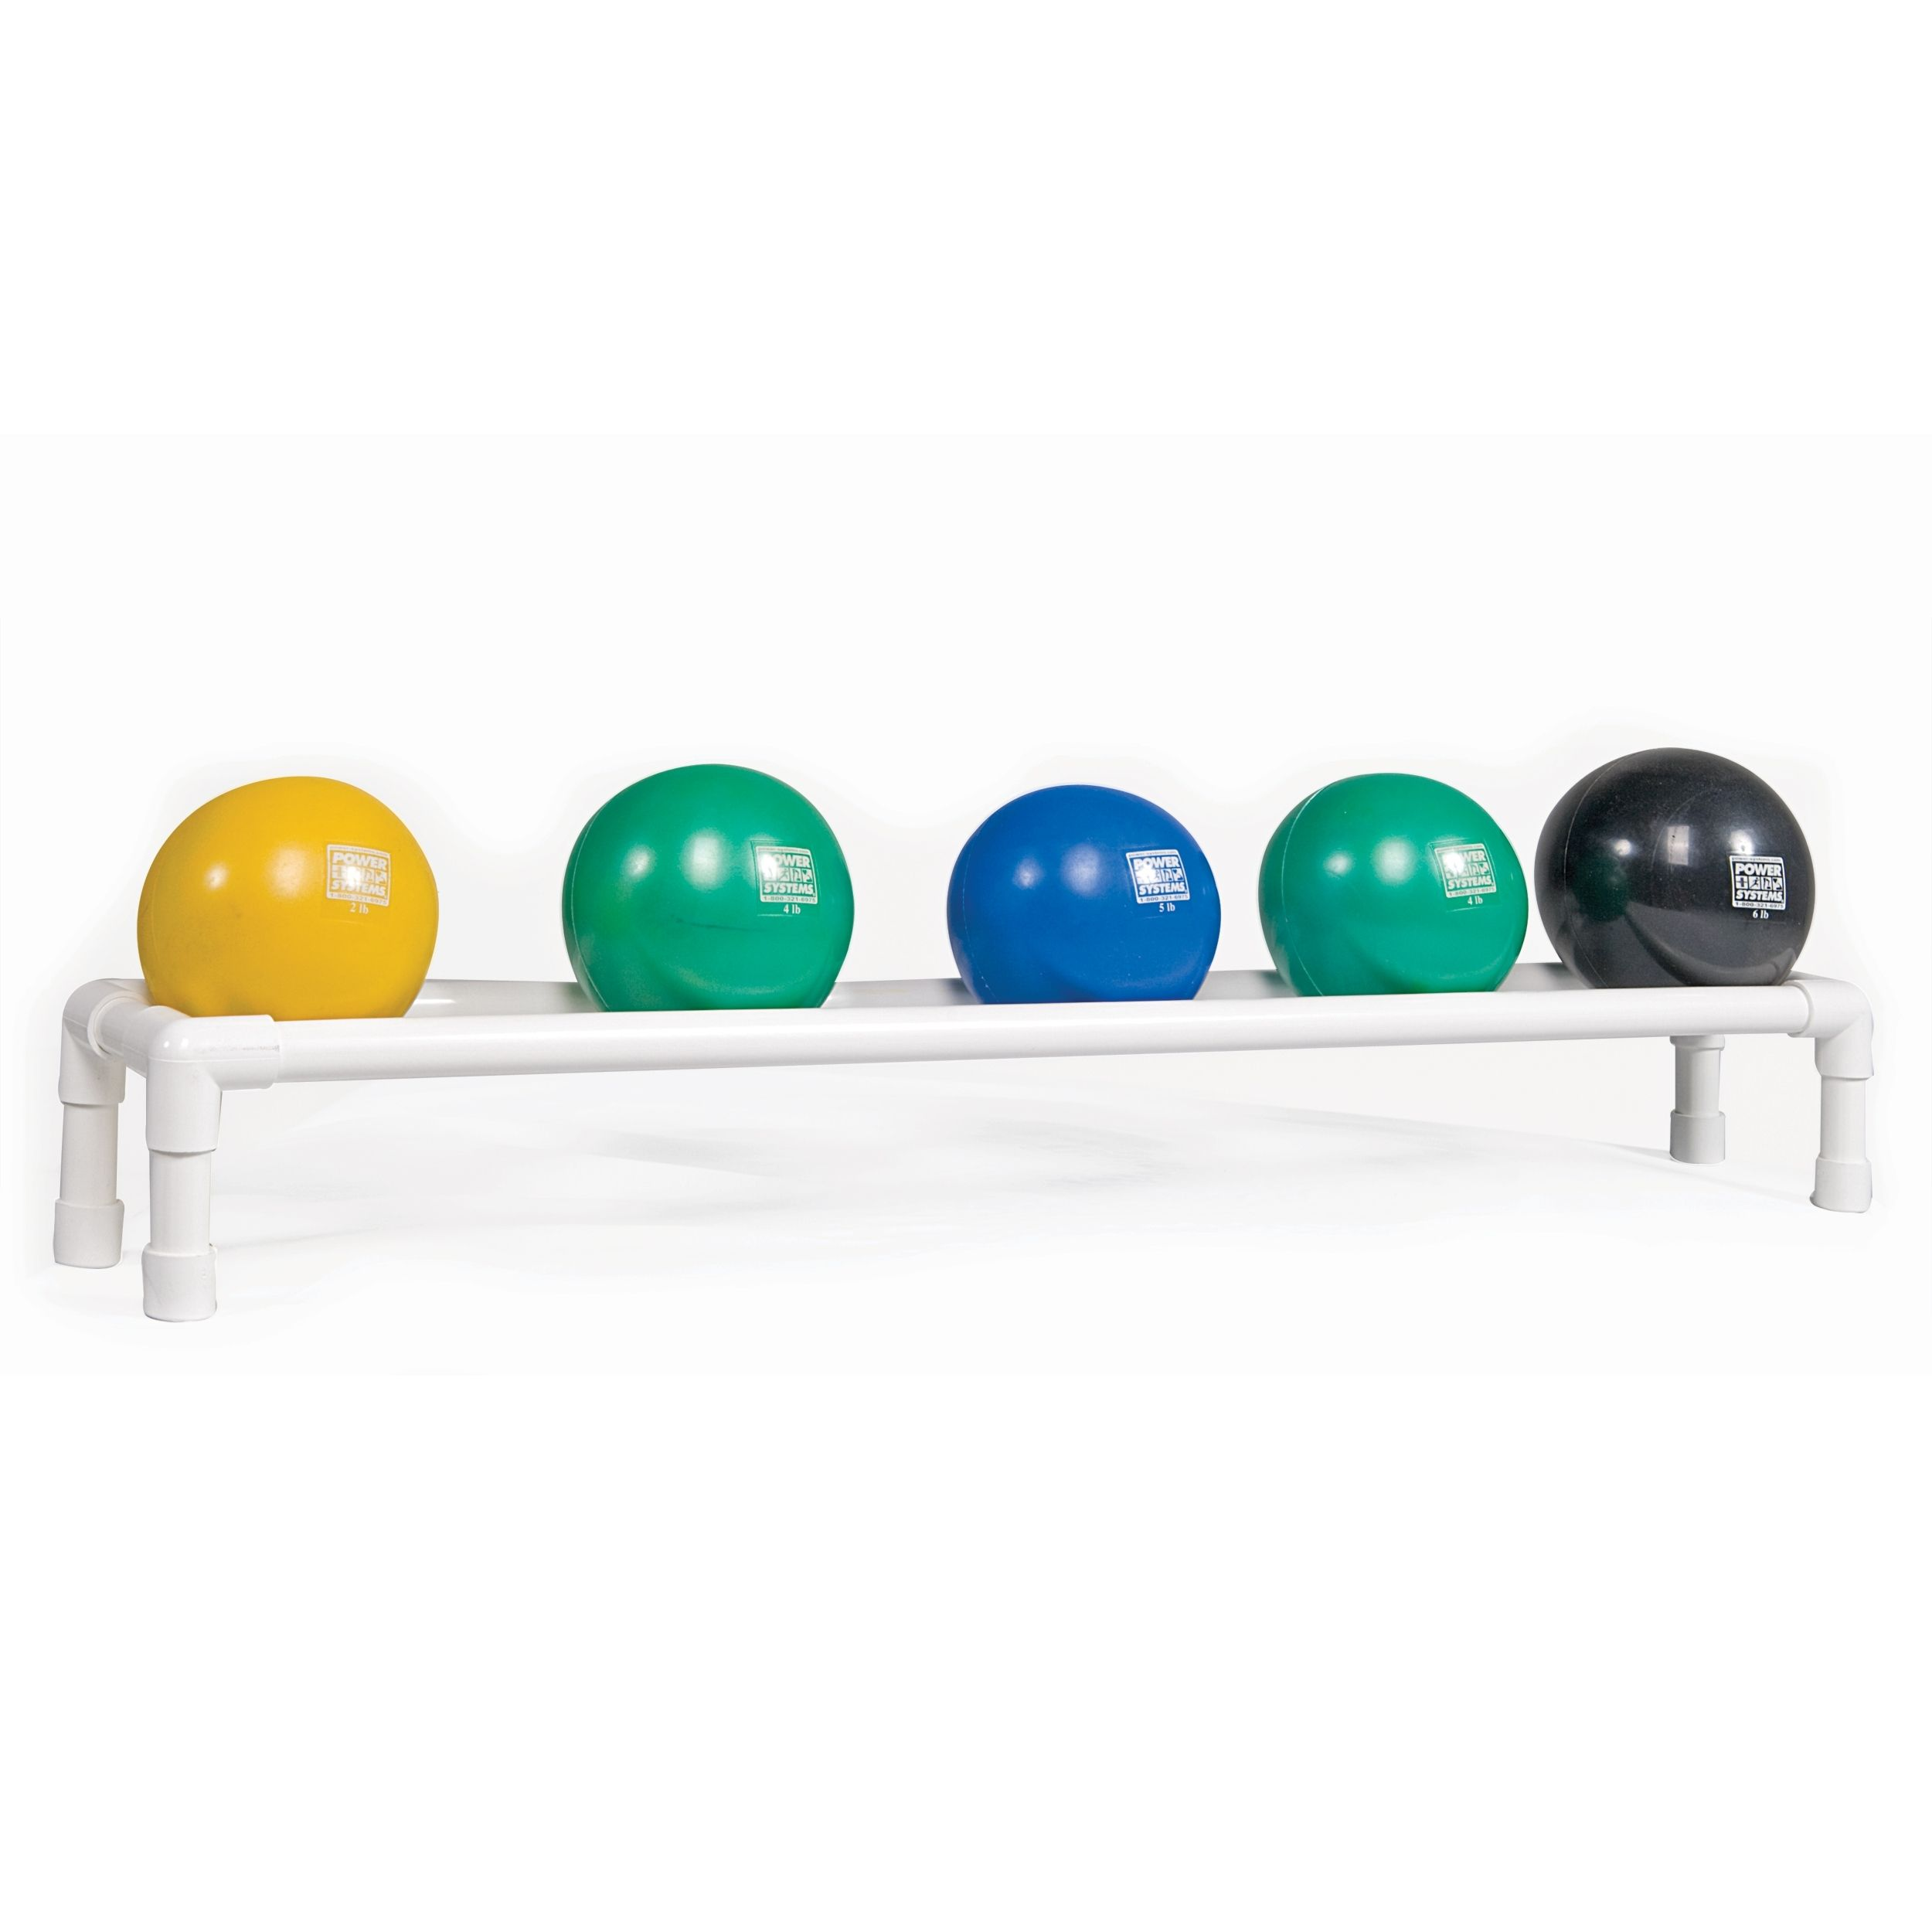 Soft Touch Med Ball Rack 5 Ball Rack Only